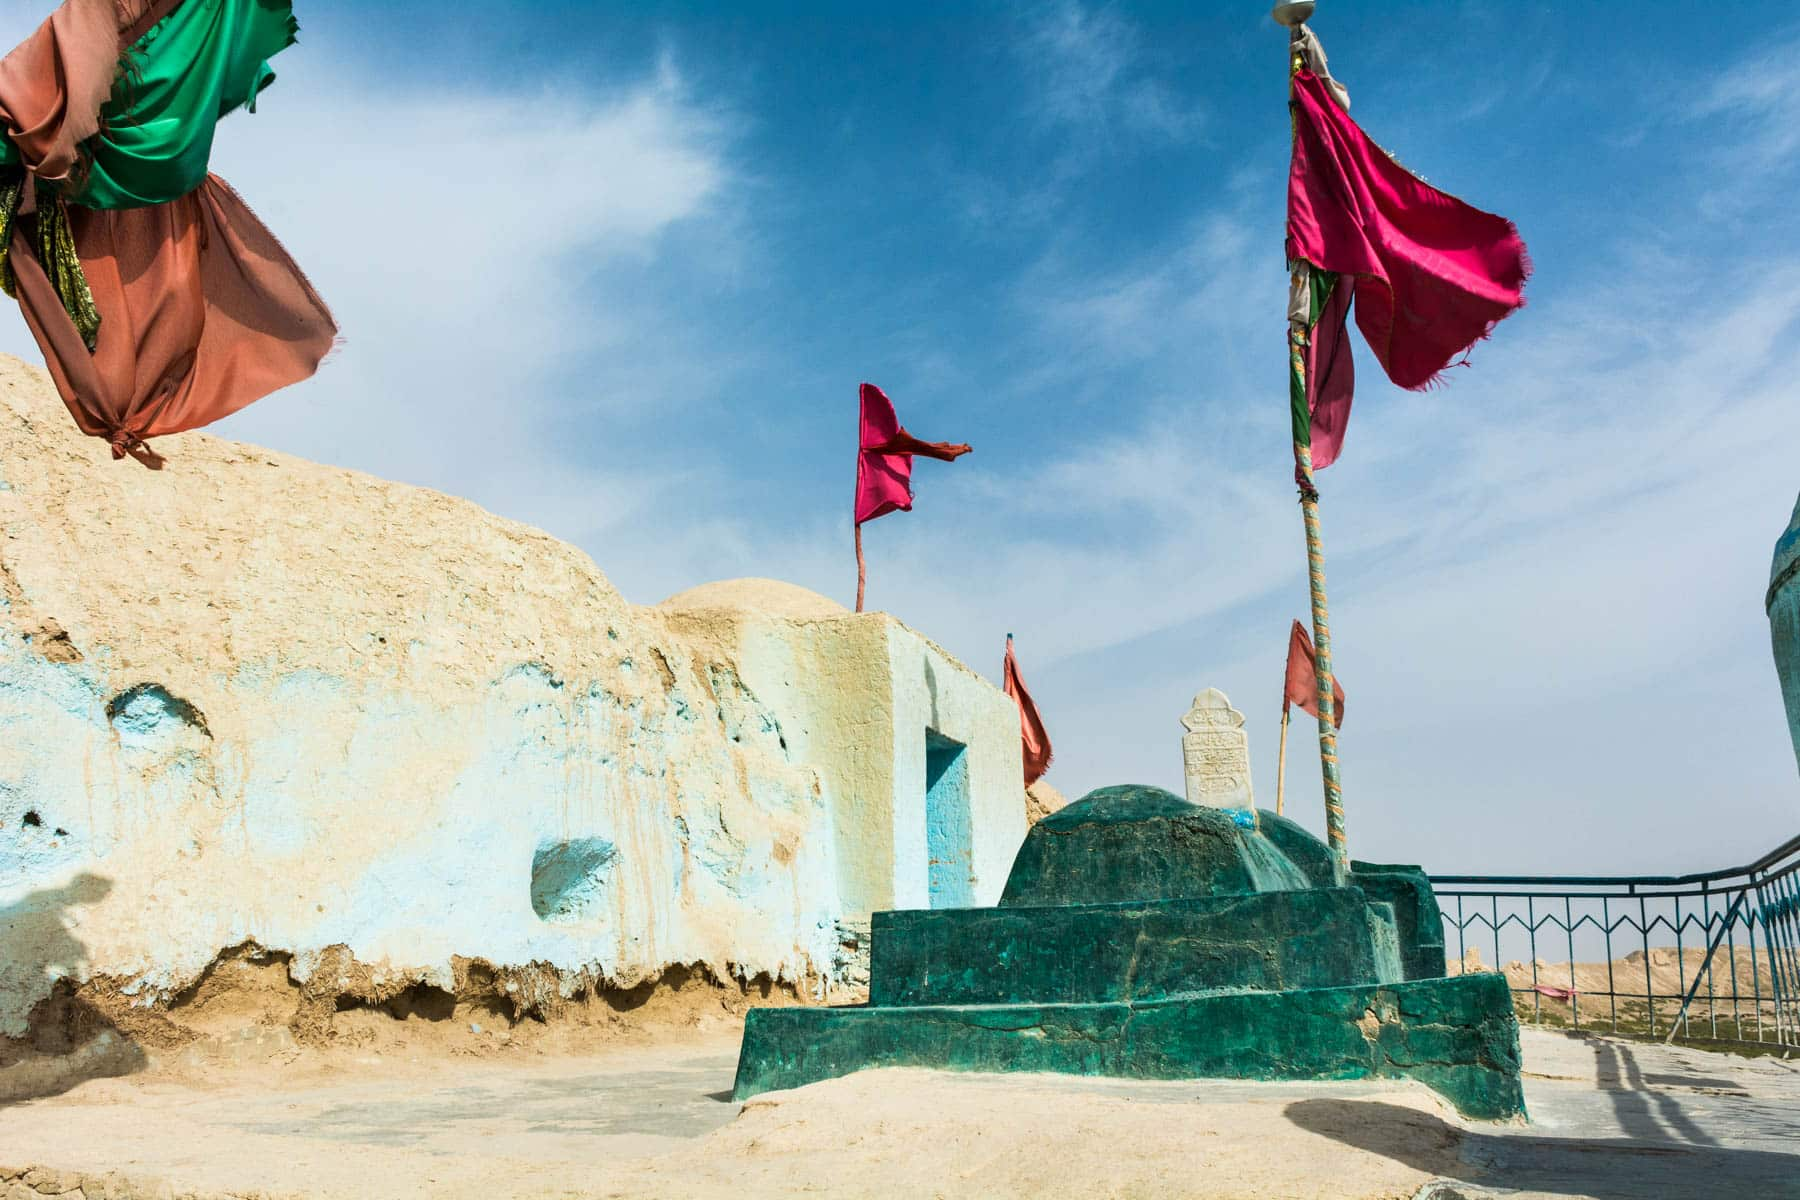 Photos of Balkh, Afghanistan - A small green Sufi shrine amongst the walls of Old Balkh - Lost With Purpose